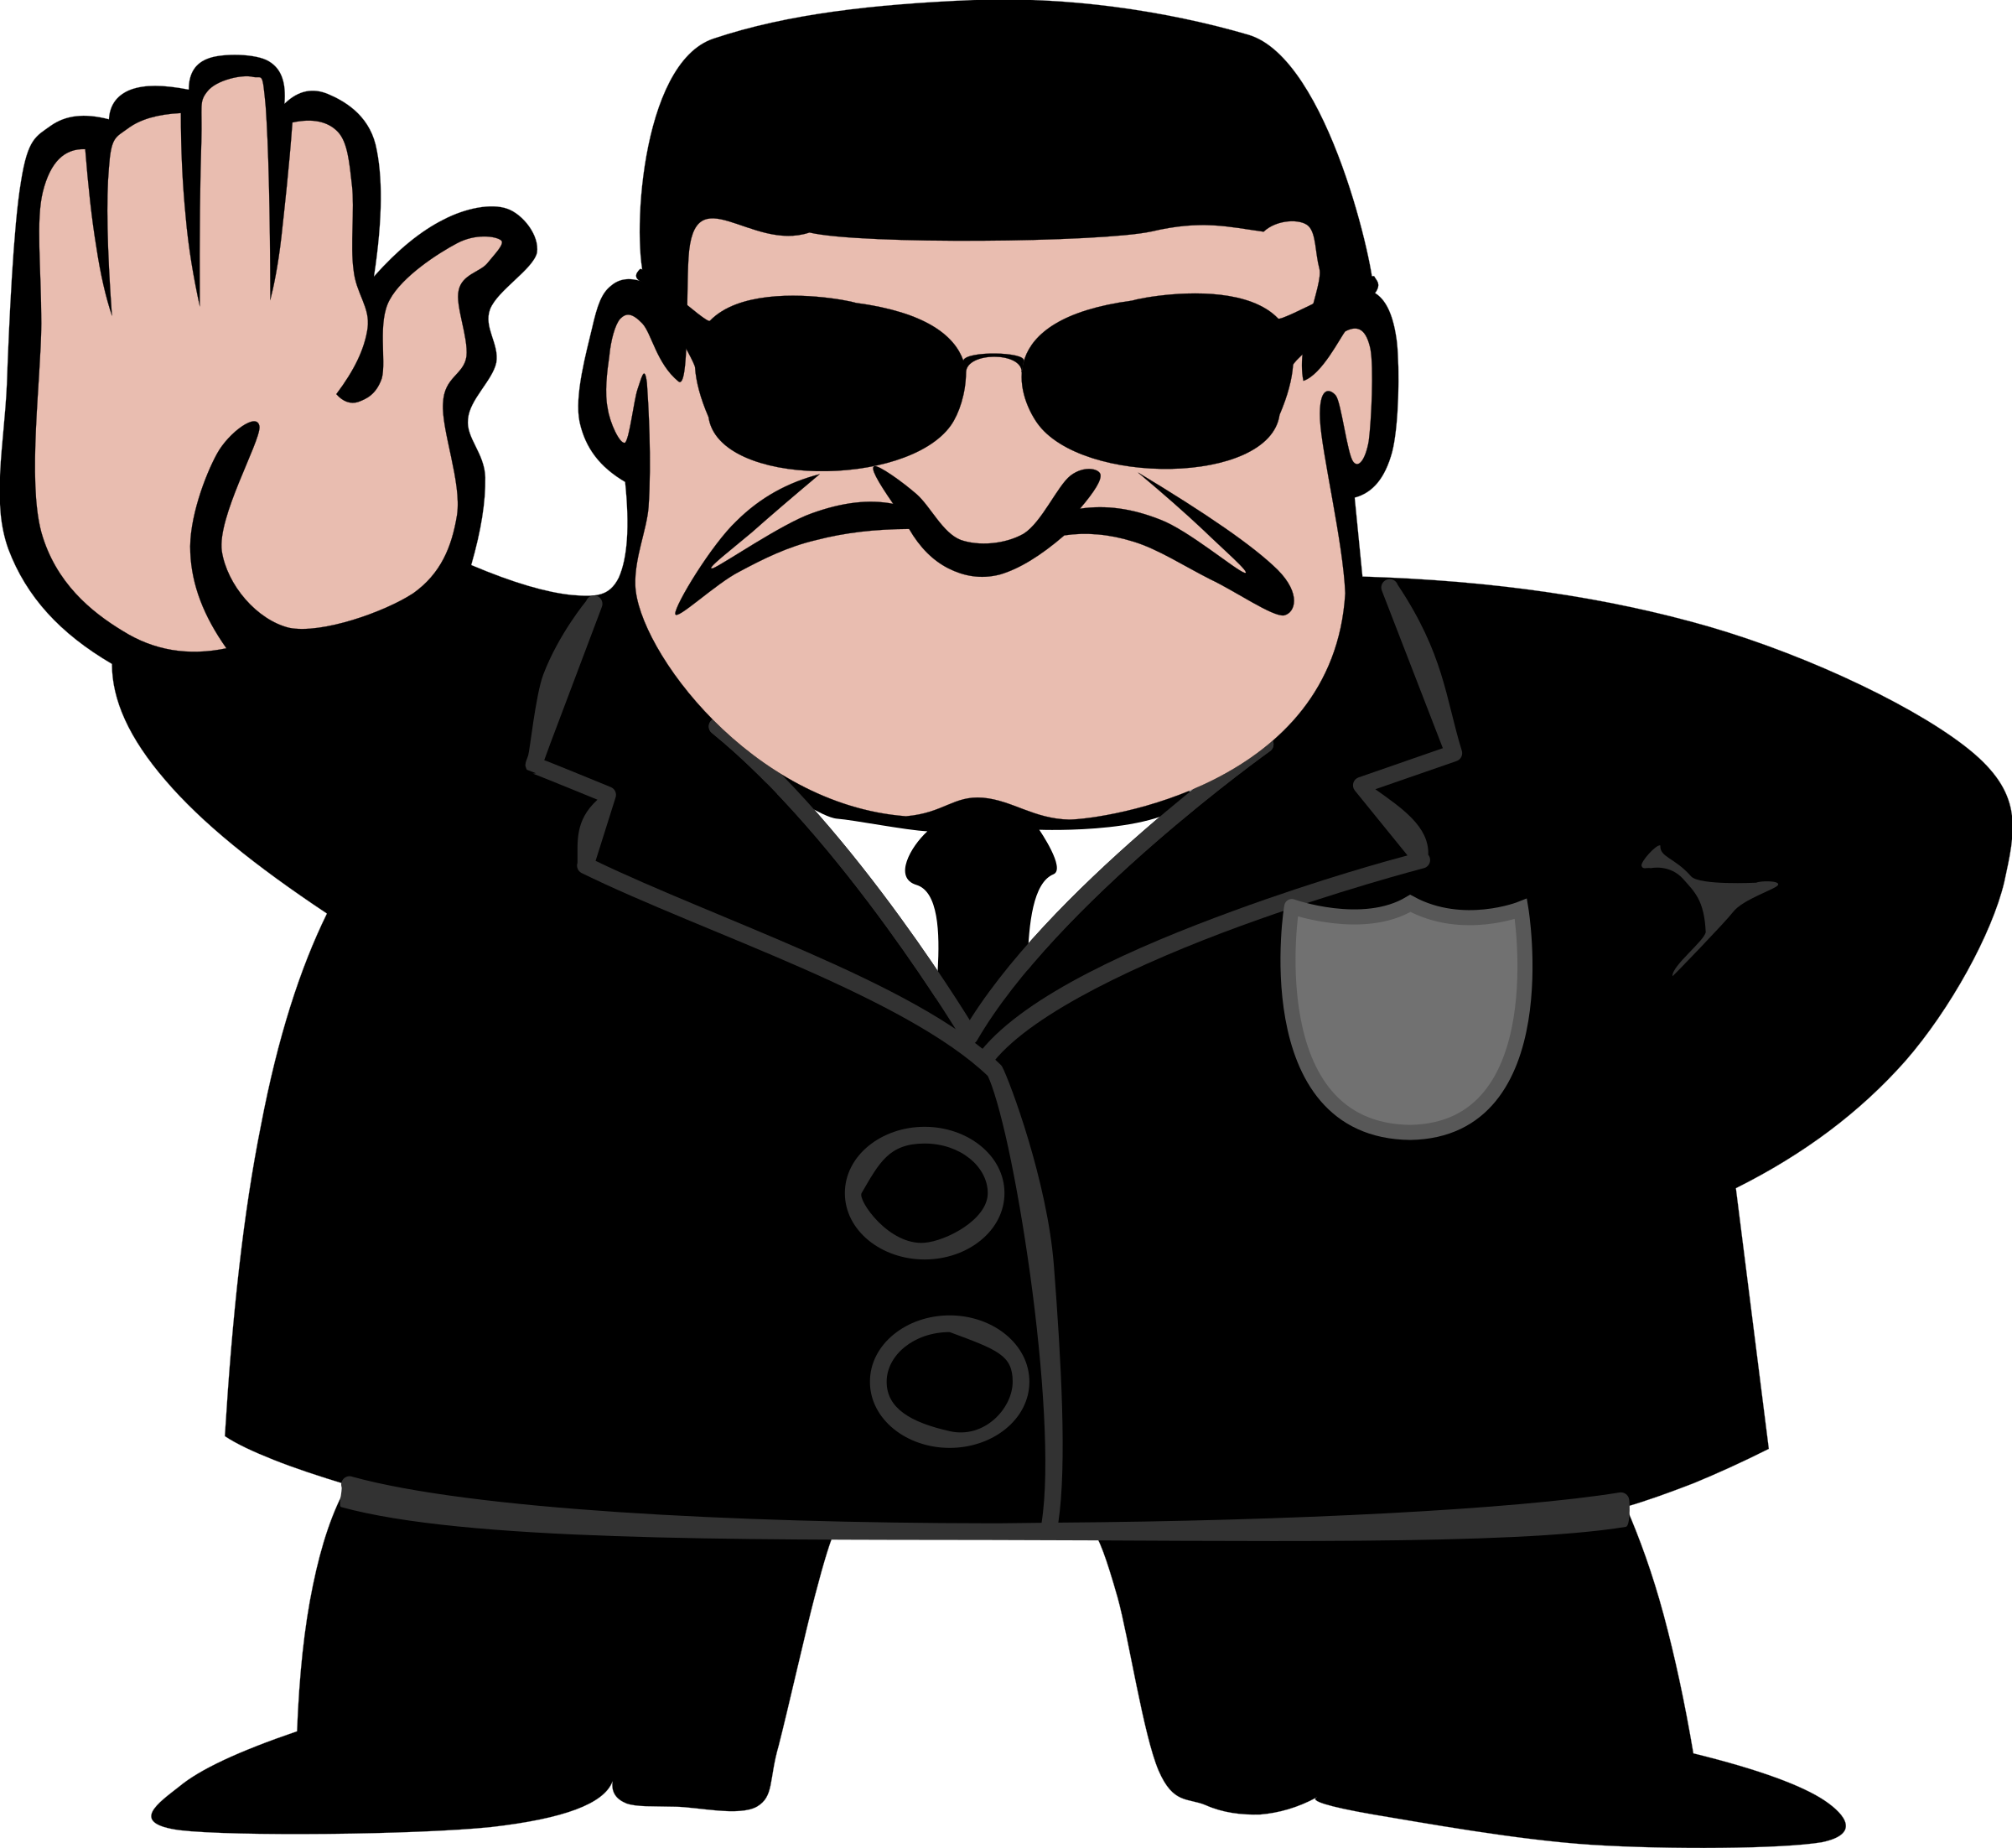 Old Policeman Stock Illustrations – 671 Old Policeman Stock Illustrations,  Vectors & Clipart - Dreamstime